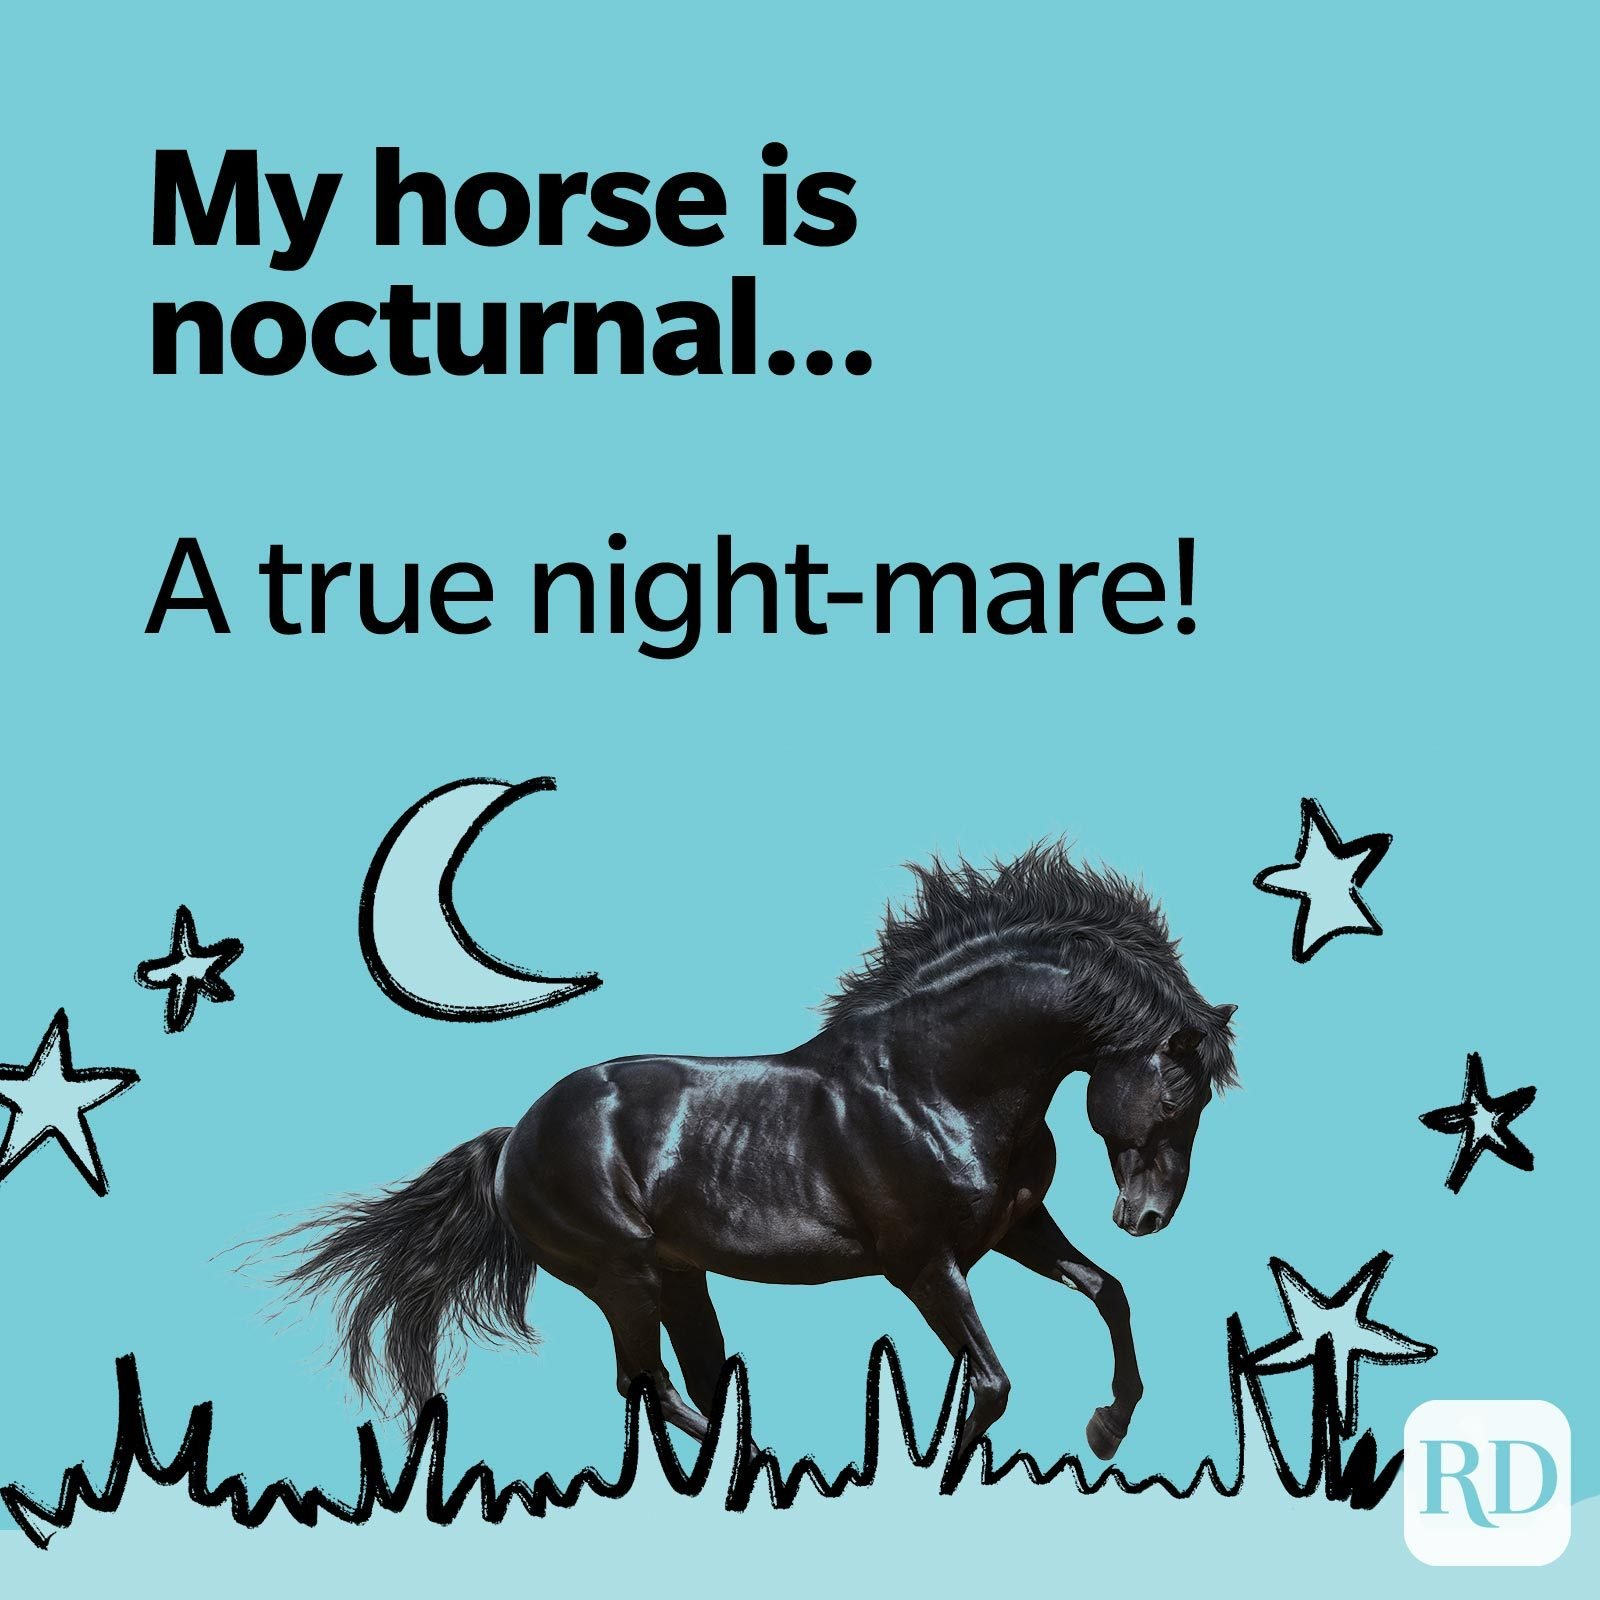 My horse is nocturnal… A true night-mare!